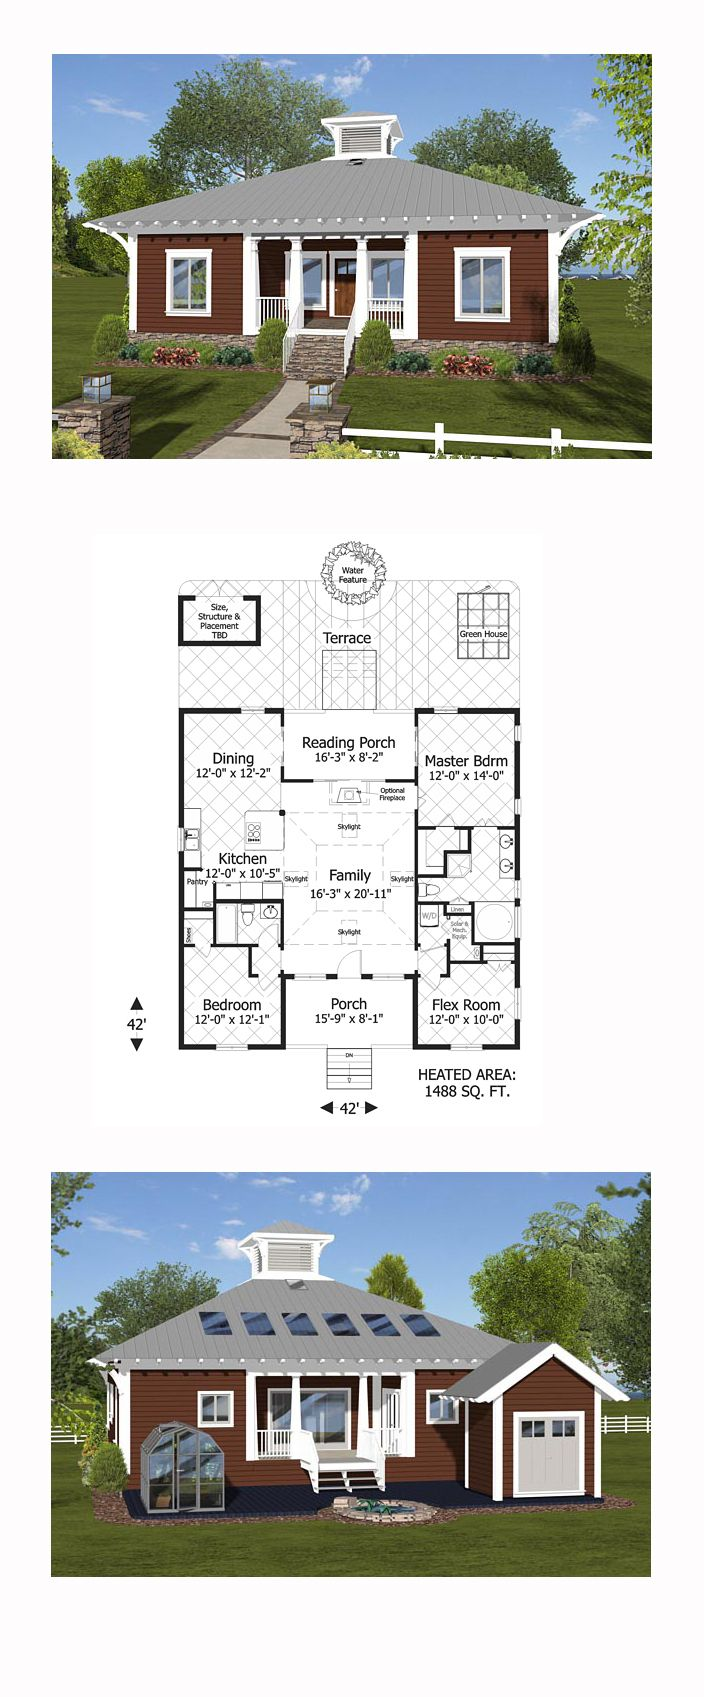 Modern House Plan 74844   Total Living Area: 1488 sq. ft., 3 bedrooms and 2 bathrooms. #modernhome